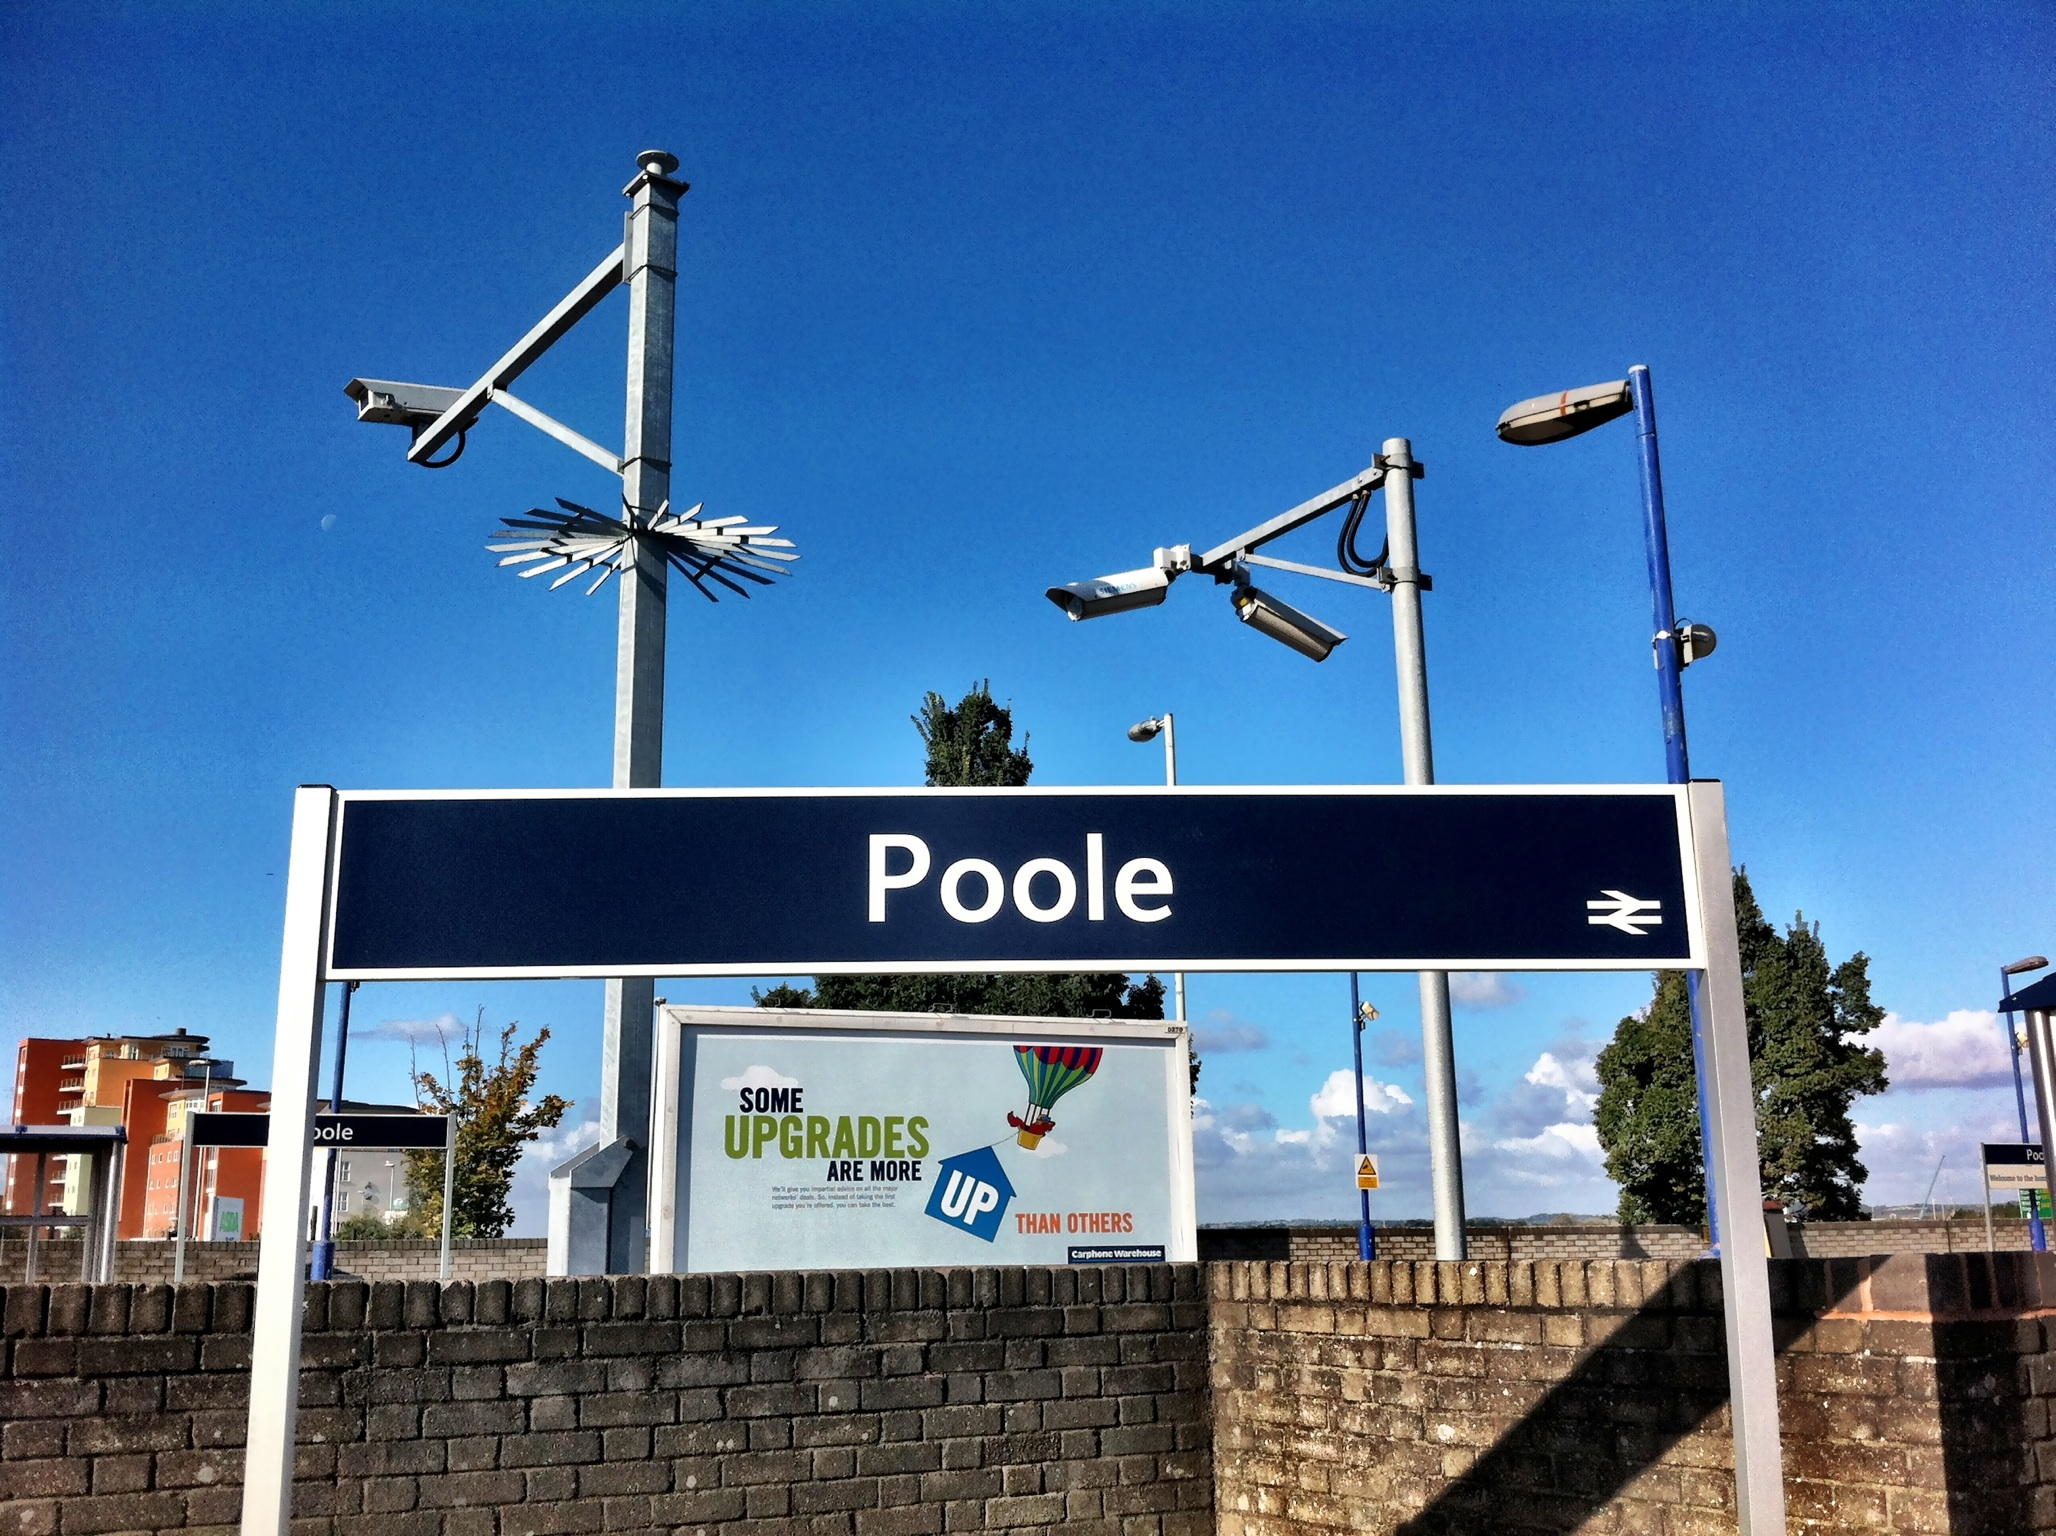 Poole Twinned with Colditz?